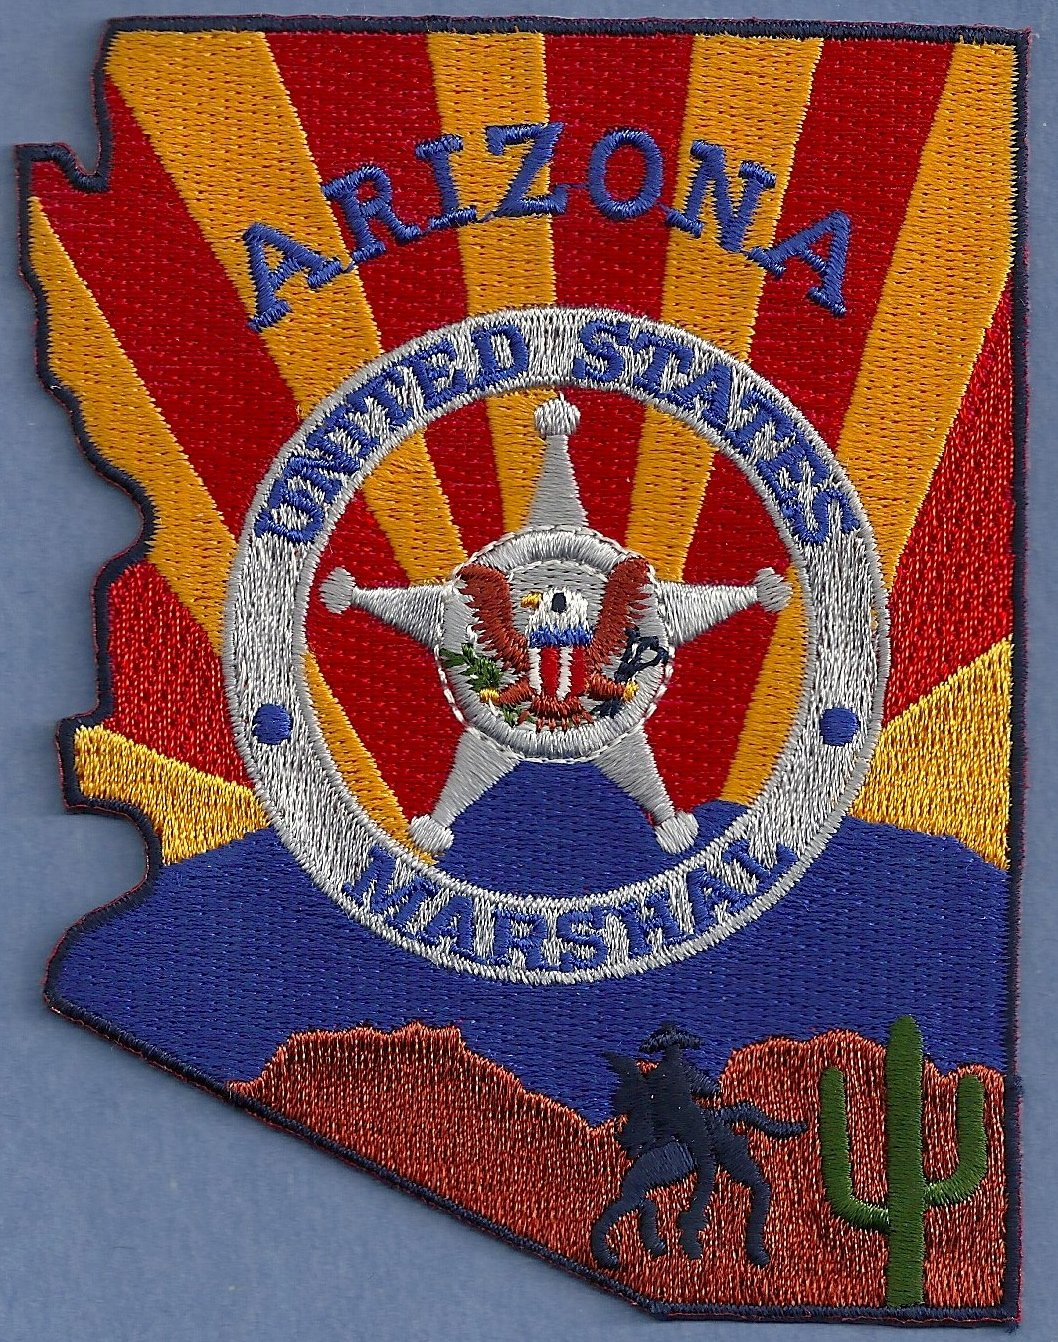 United States Marshal Arizona Police Patch